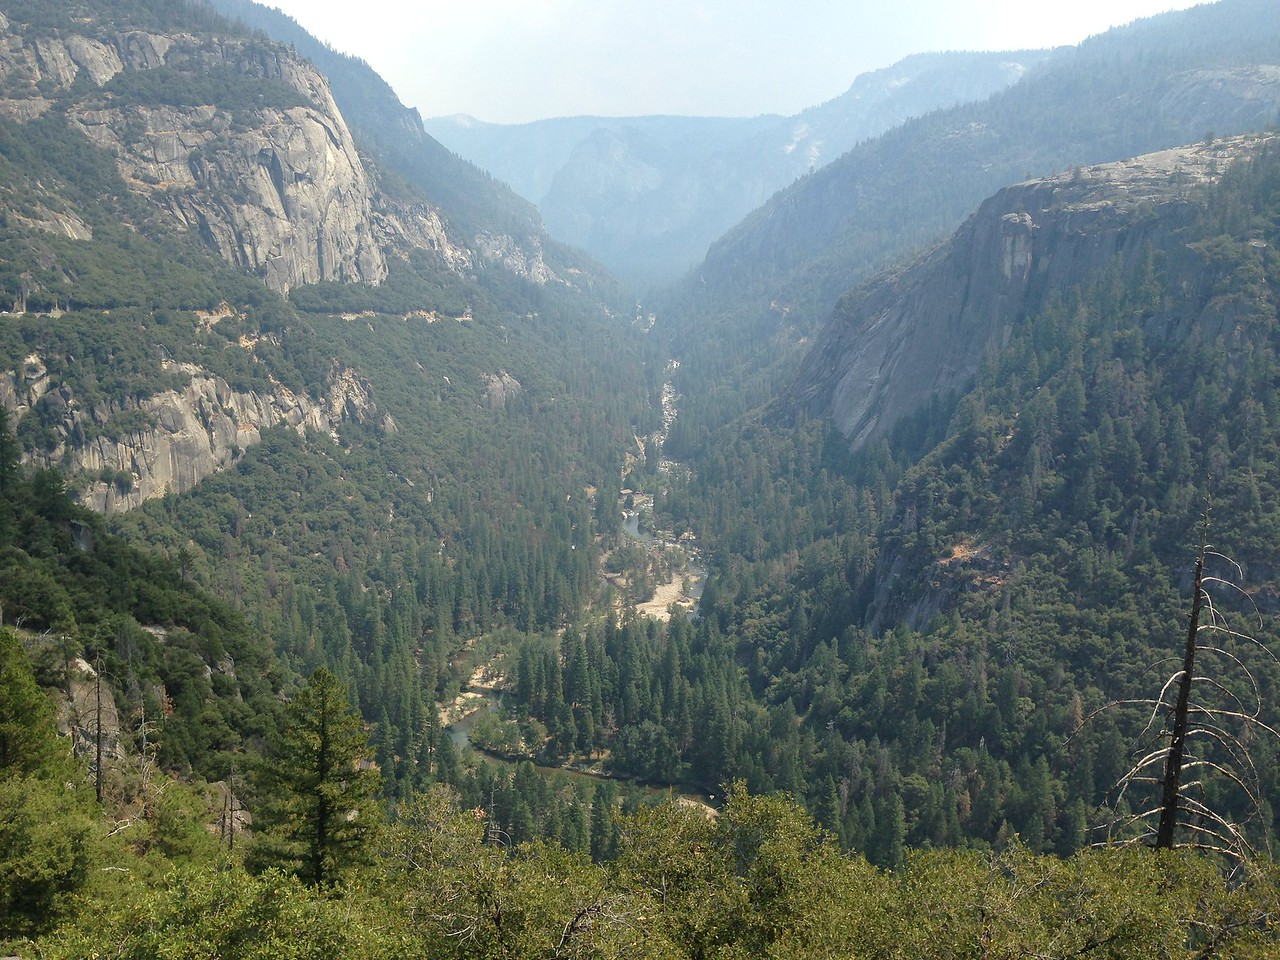 (Wider view of canyon)